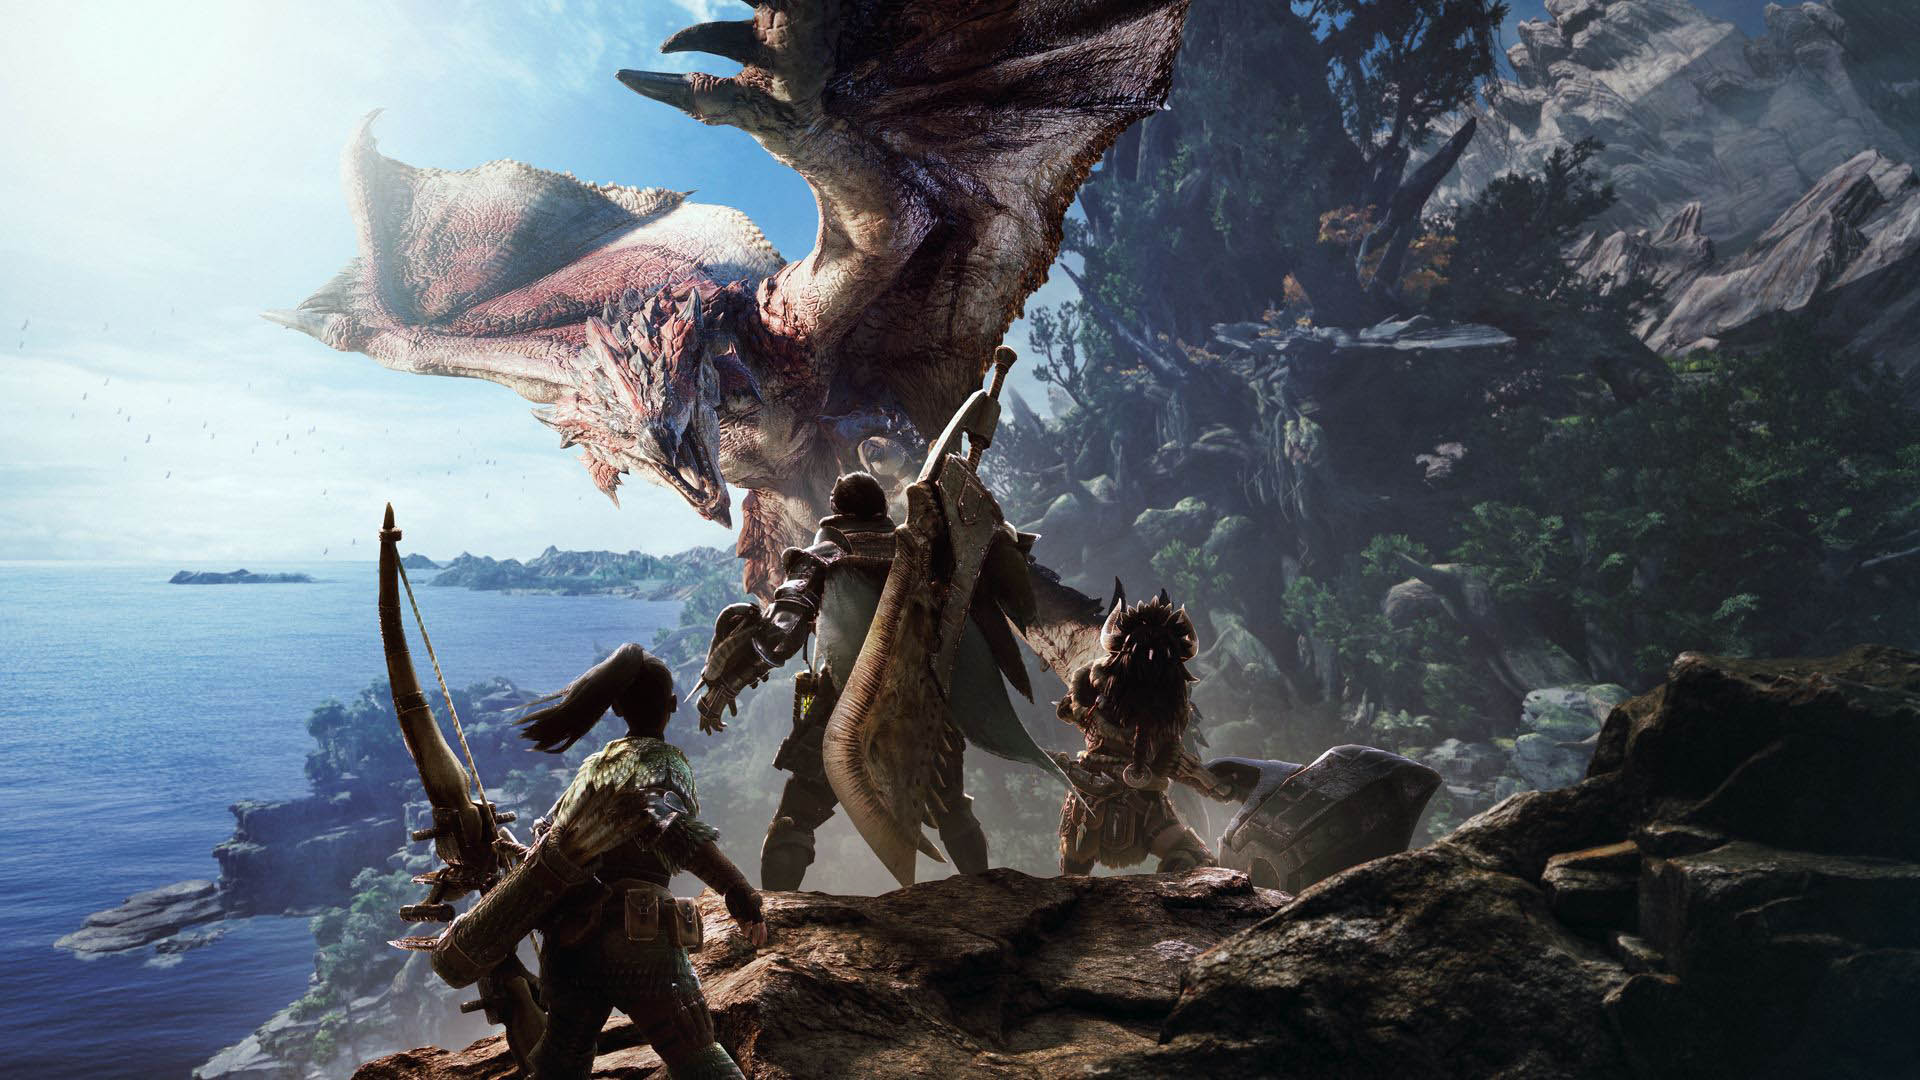 Leaked Monster Hunter Trailer Features Familiar Monsters